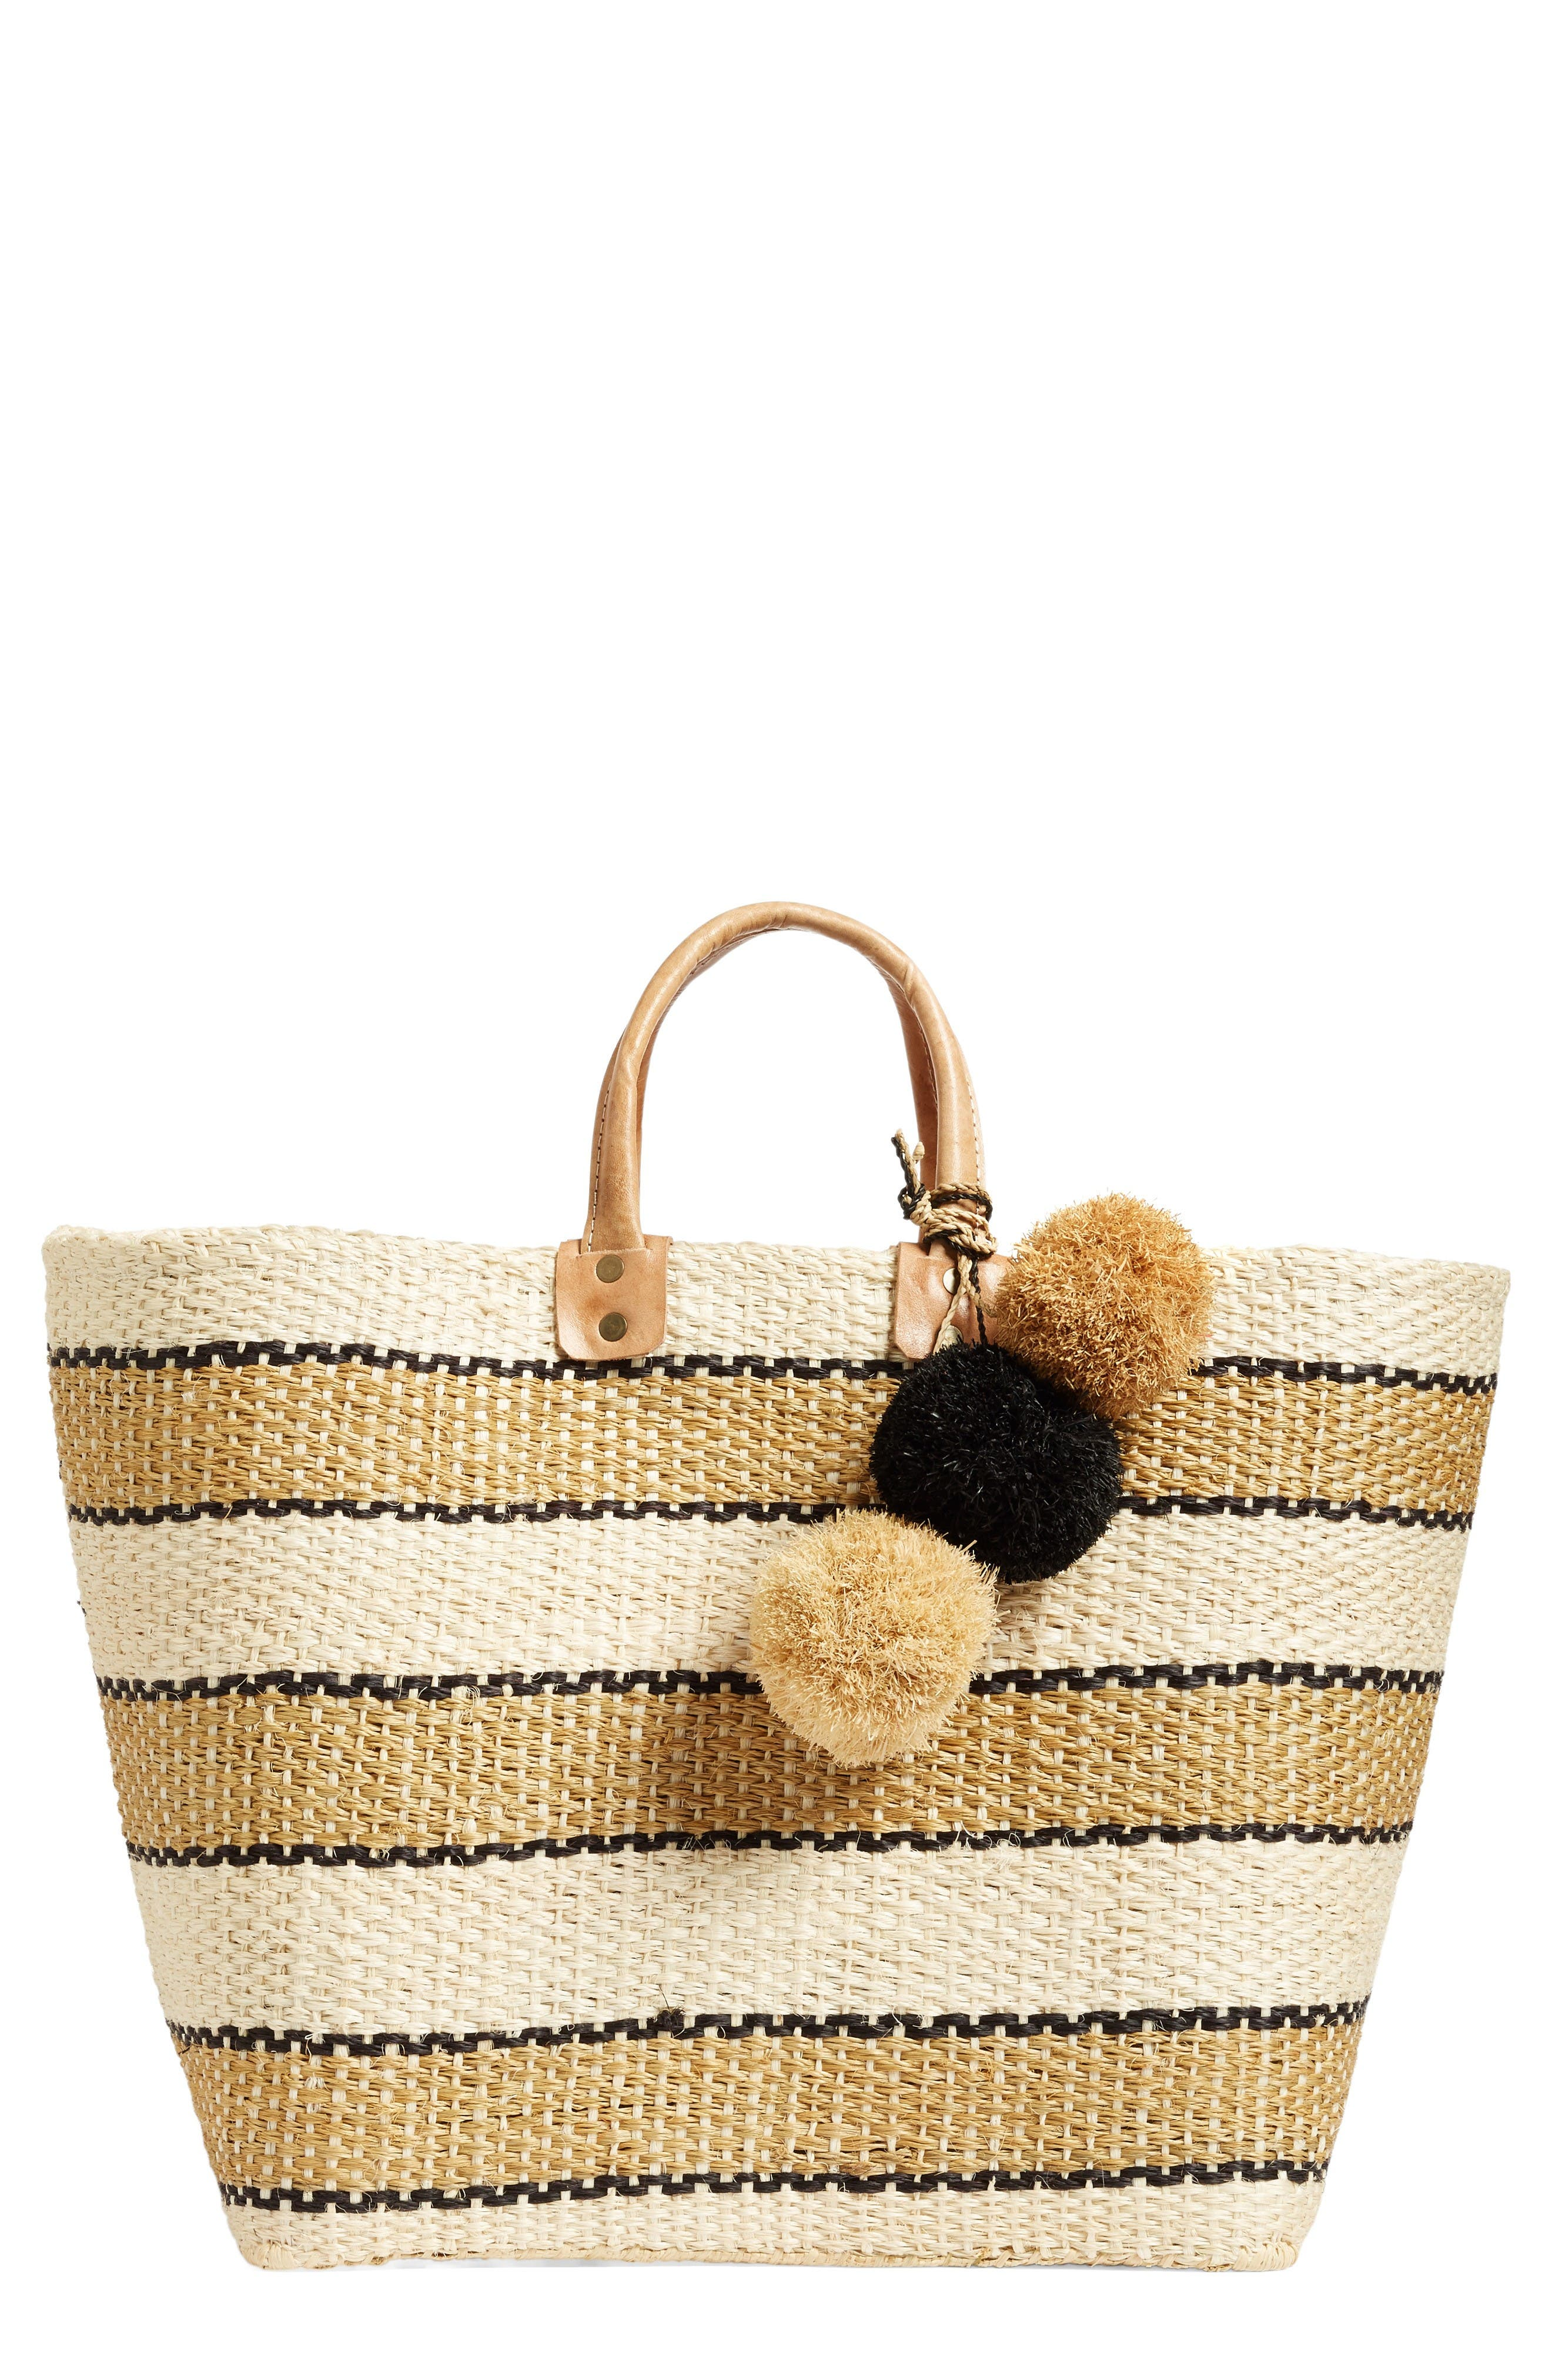 Alternate Image 1 Selected - Mar y Sol 'Capri' Woven Tote with Pom Charms